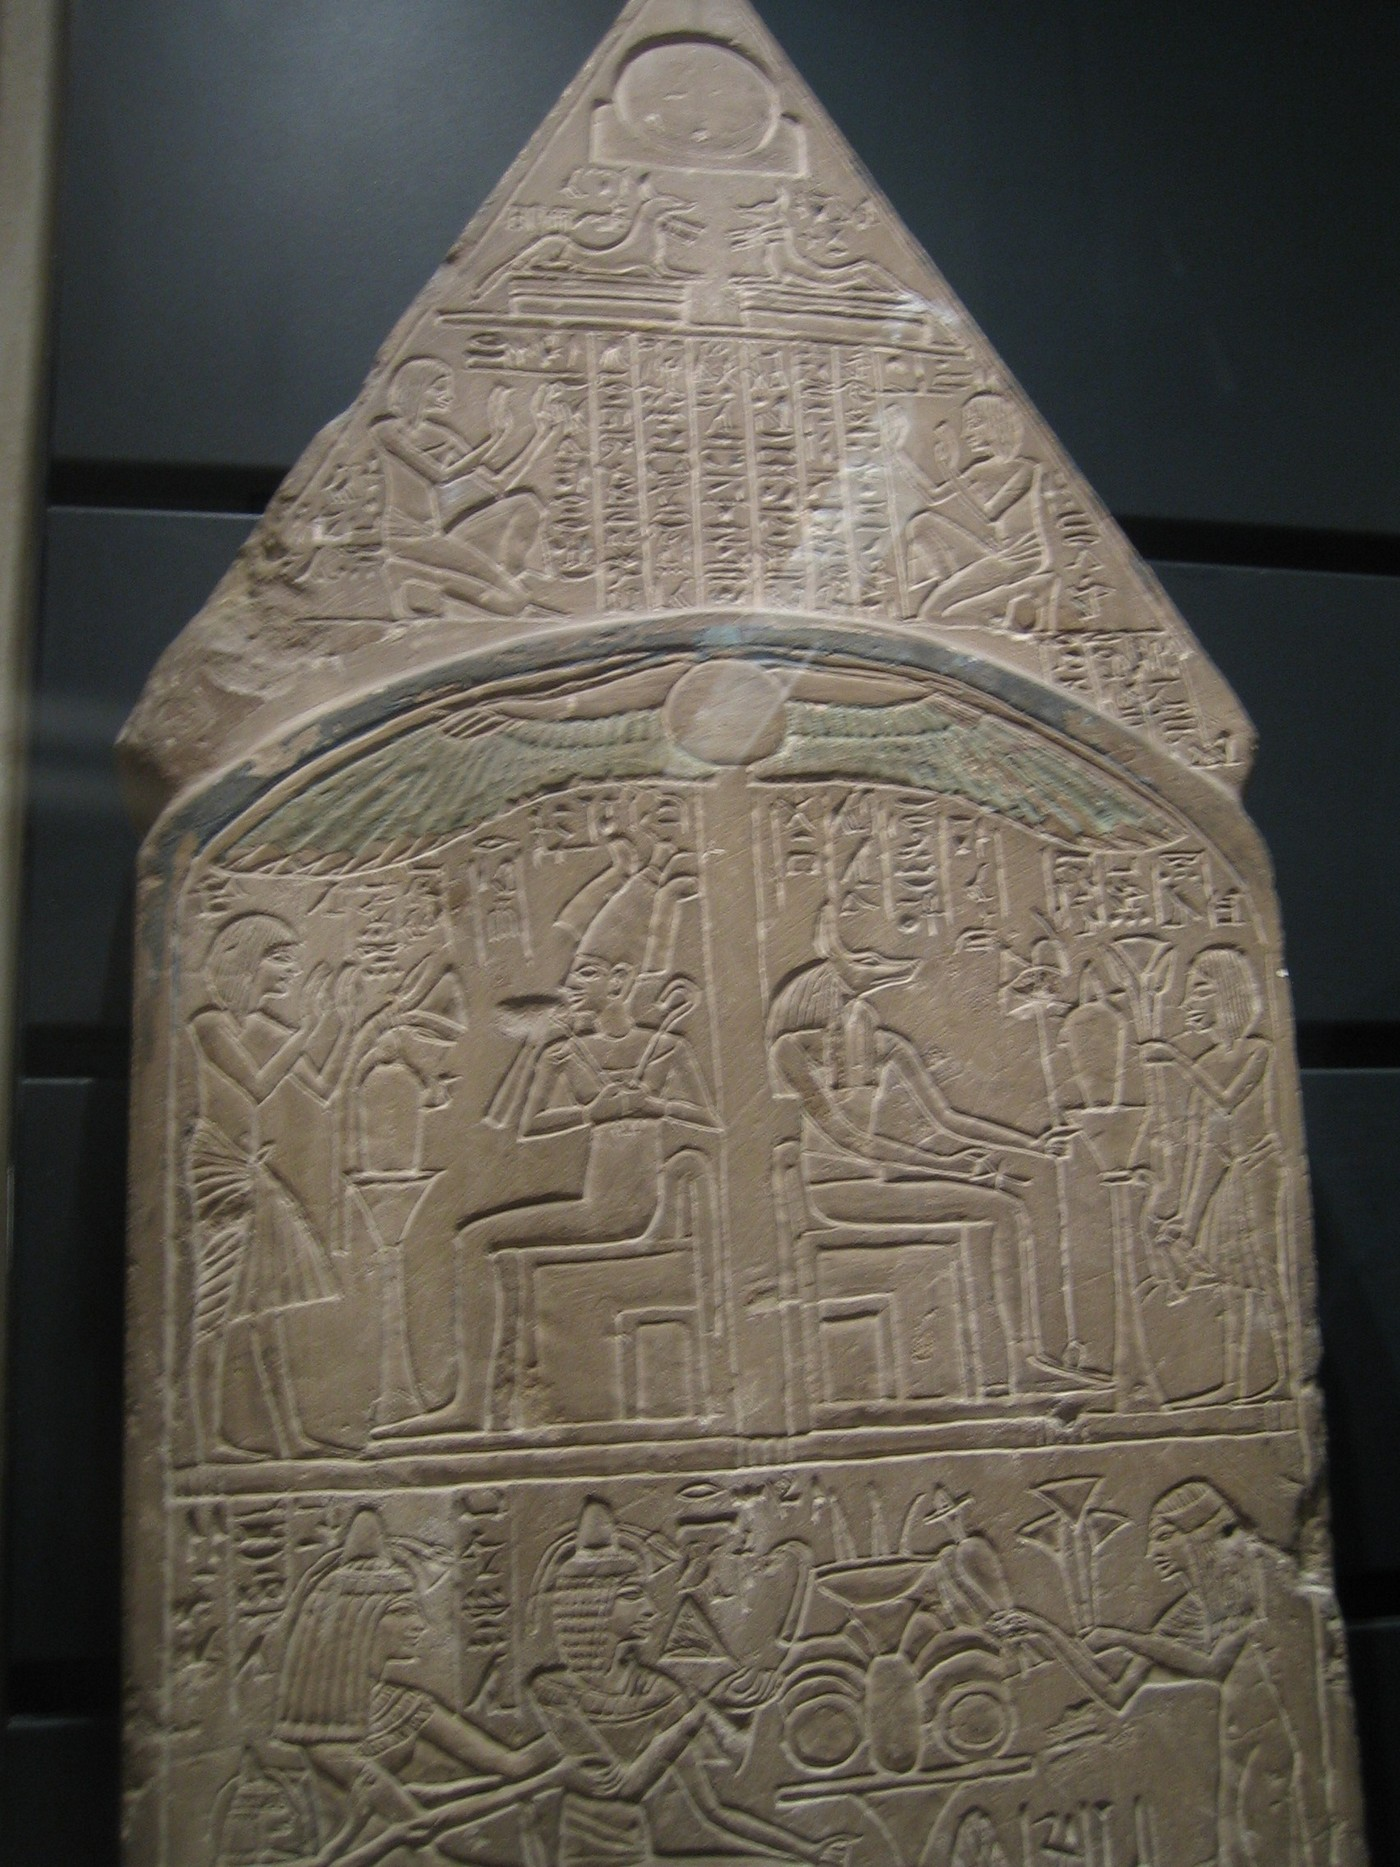 Louvre_egyptos_27.jpg